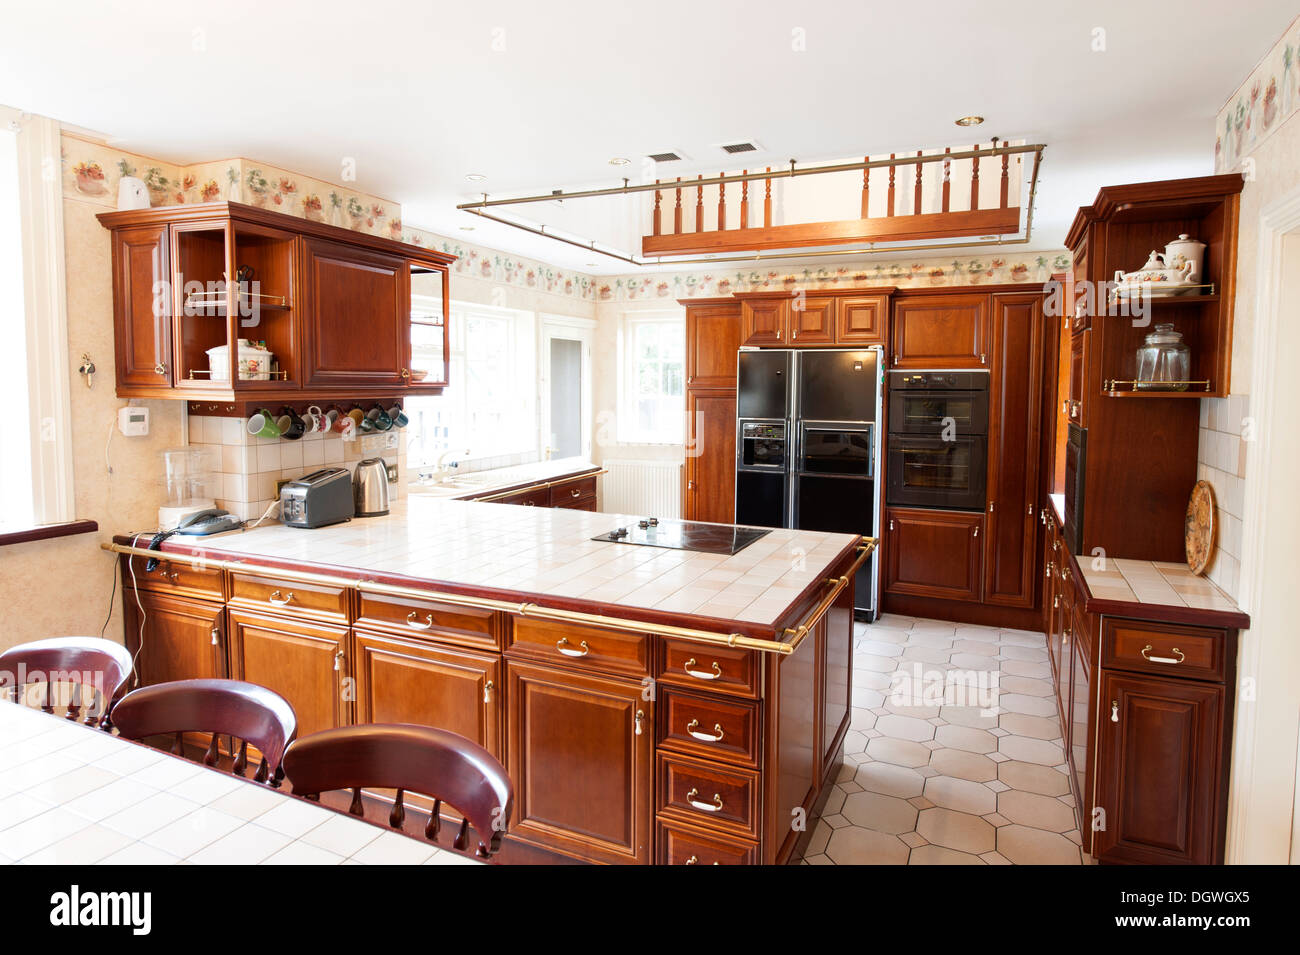 Country Style Kitchen Stockfotos & Country Style Kitchen Bilder - Alamy